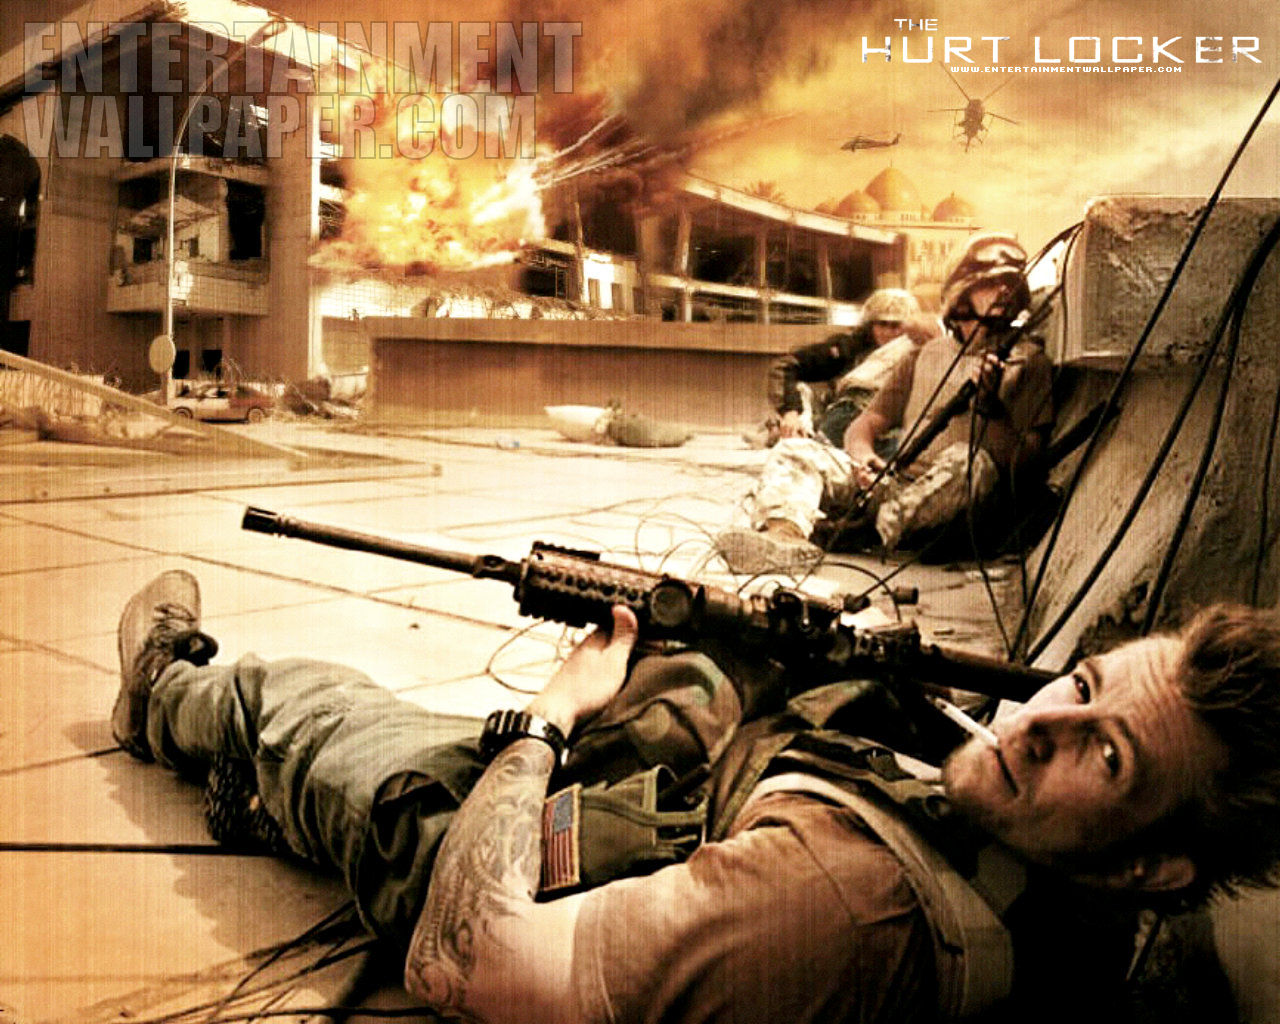 http://cinemathon.files.wordpress.com/2009/12/the_hurt_locker01.jpg